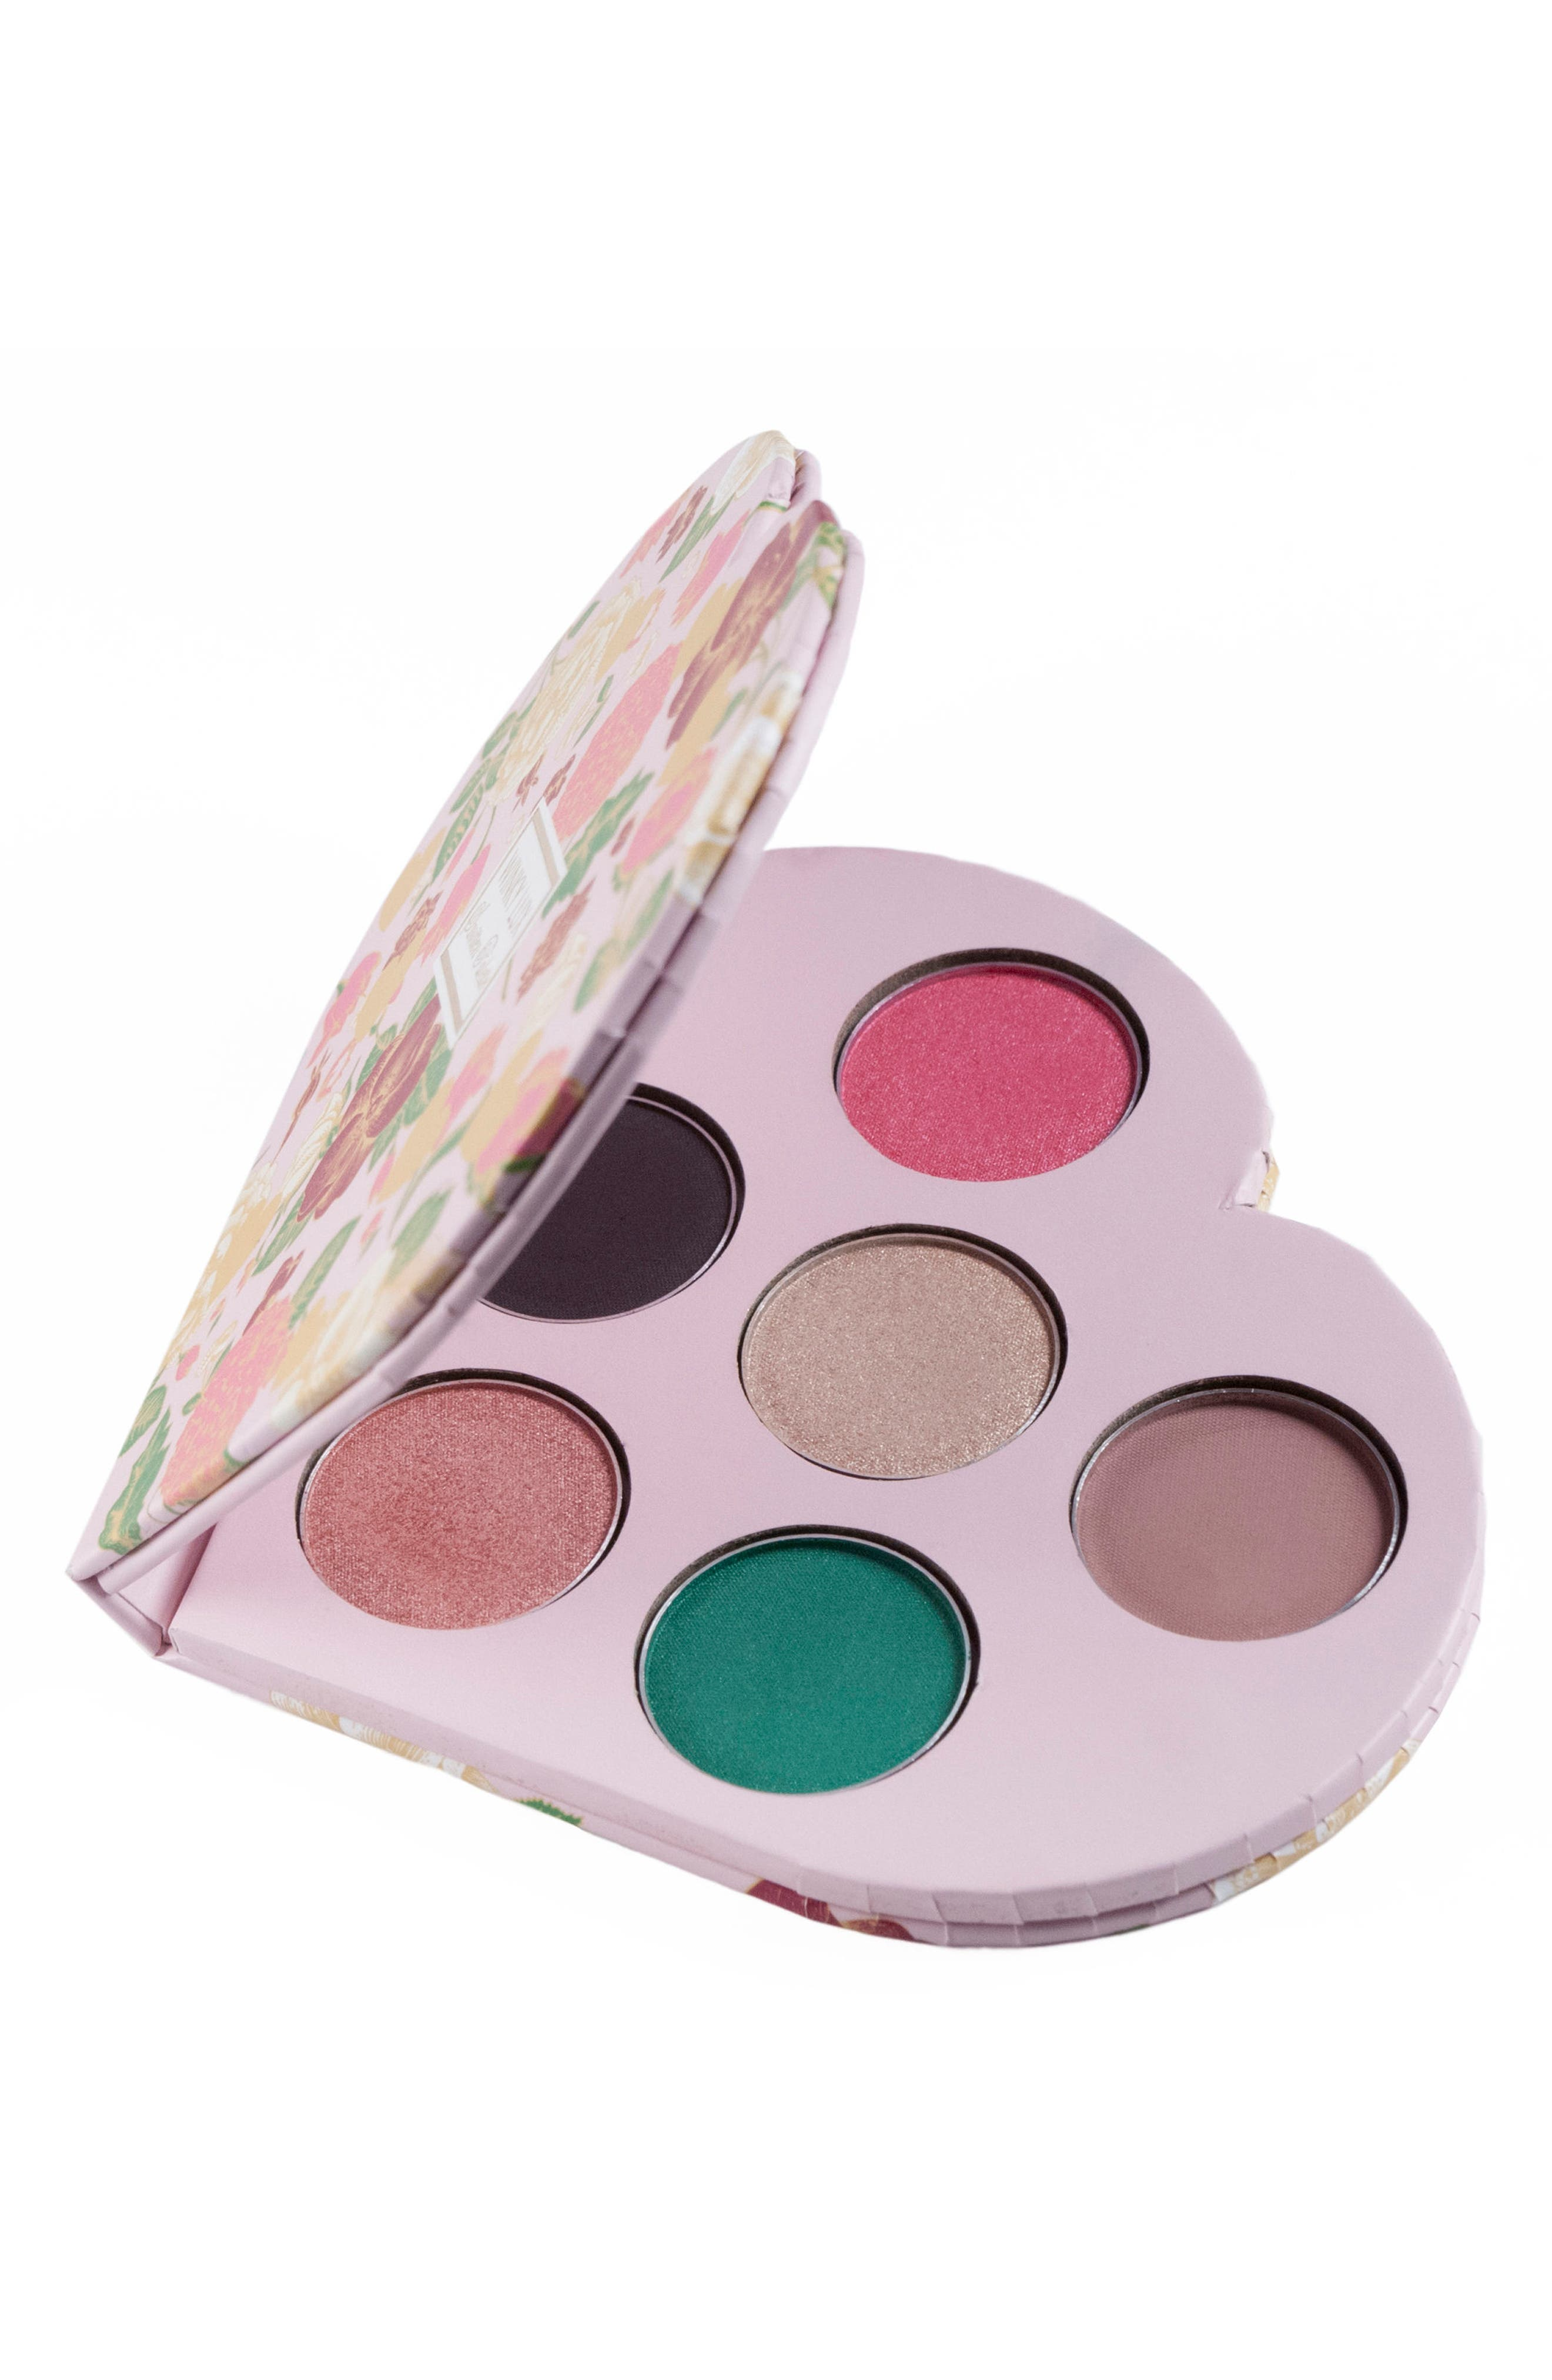 Smitten Heart Eyeshadow Palette,                             Main thumbnail 1, color,                             No Color